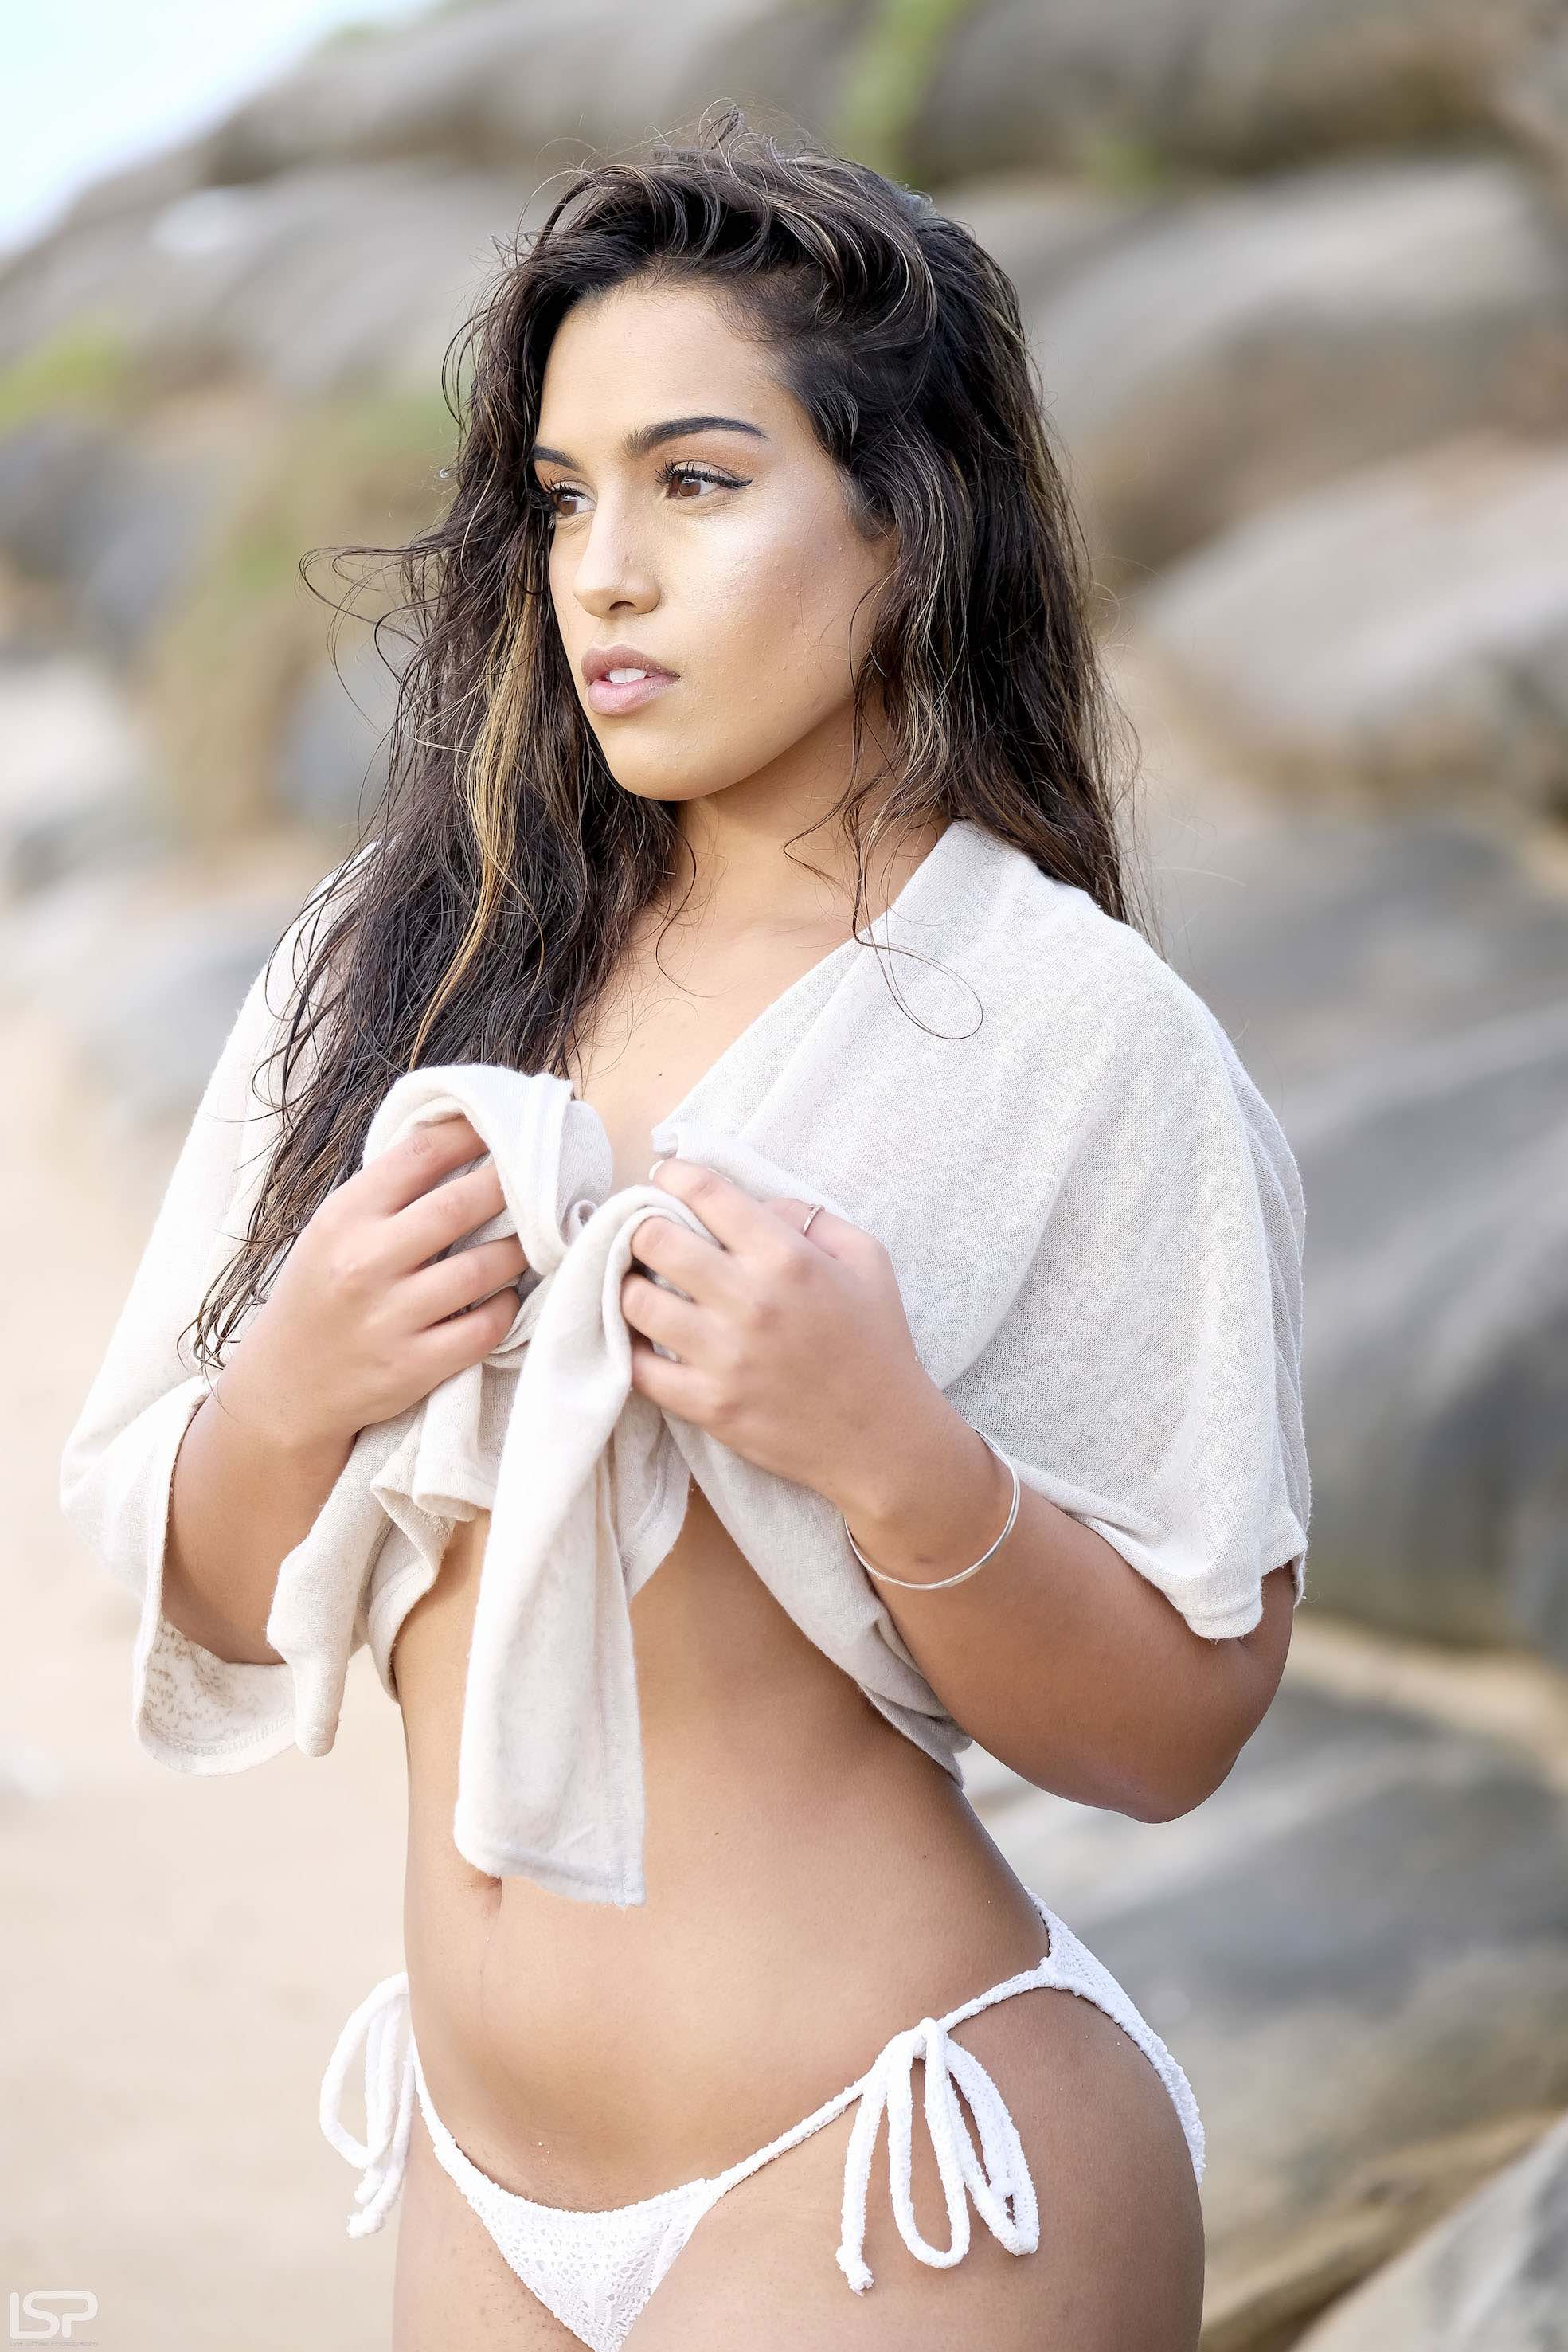 Our SA Girls feature with Camilee Naidoo